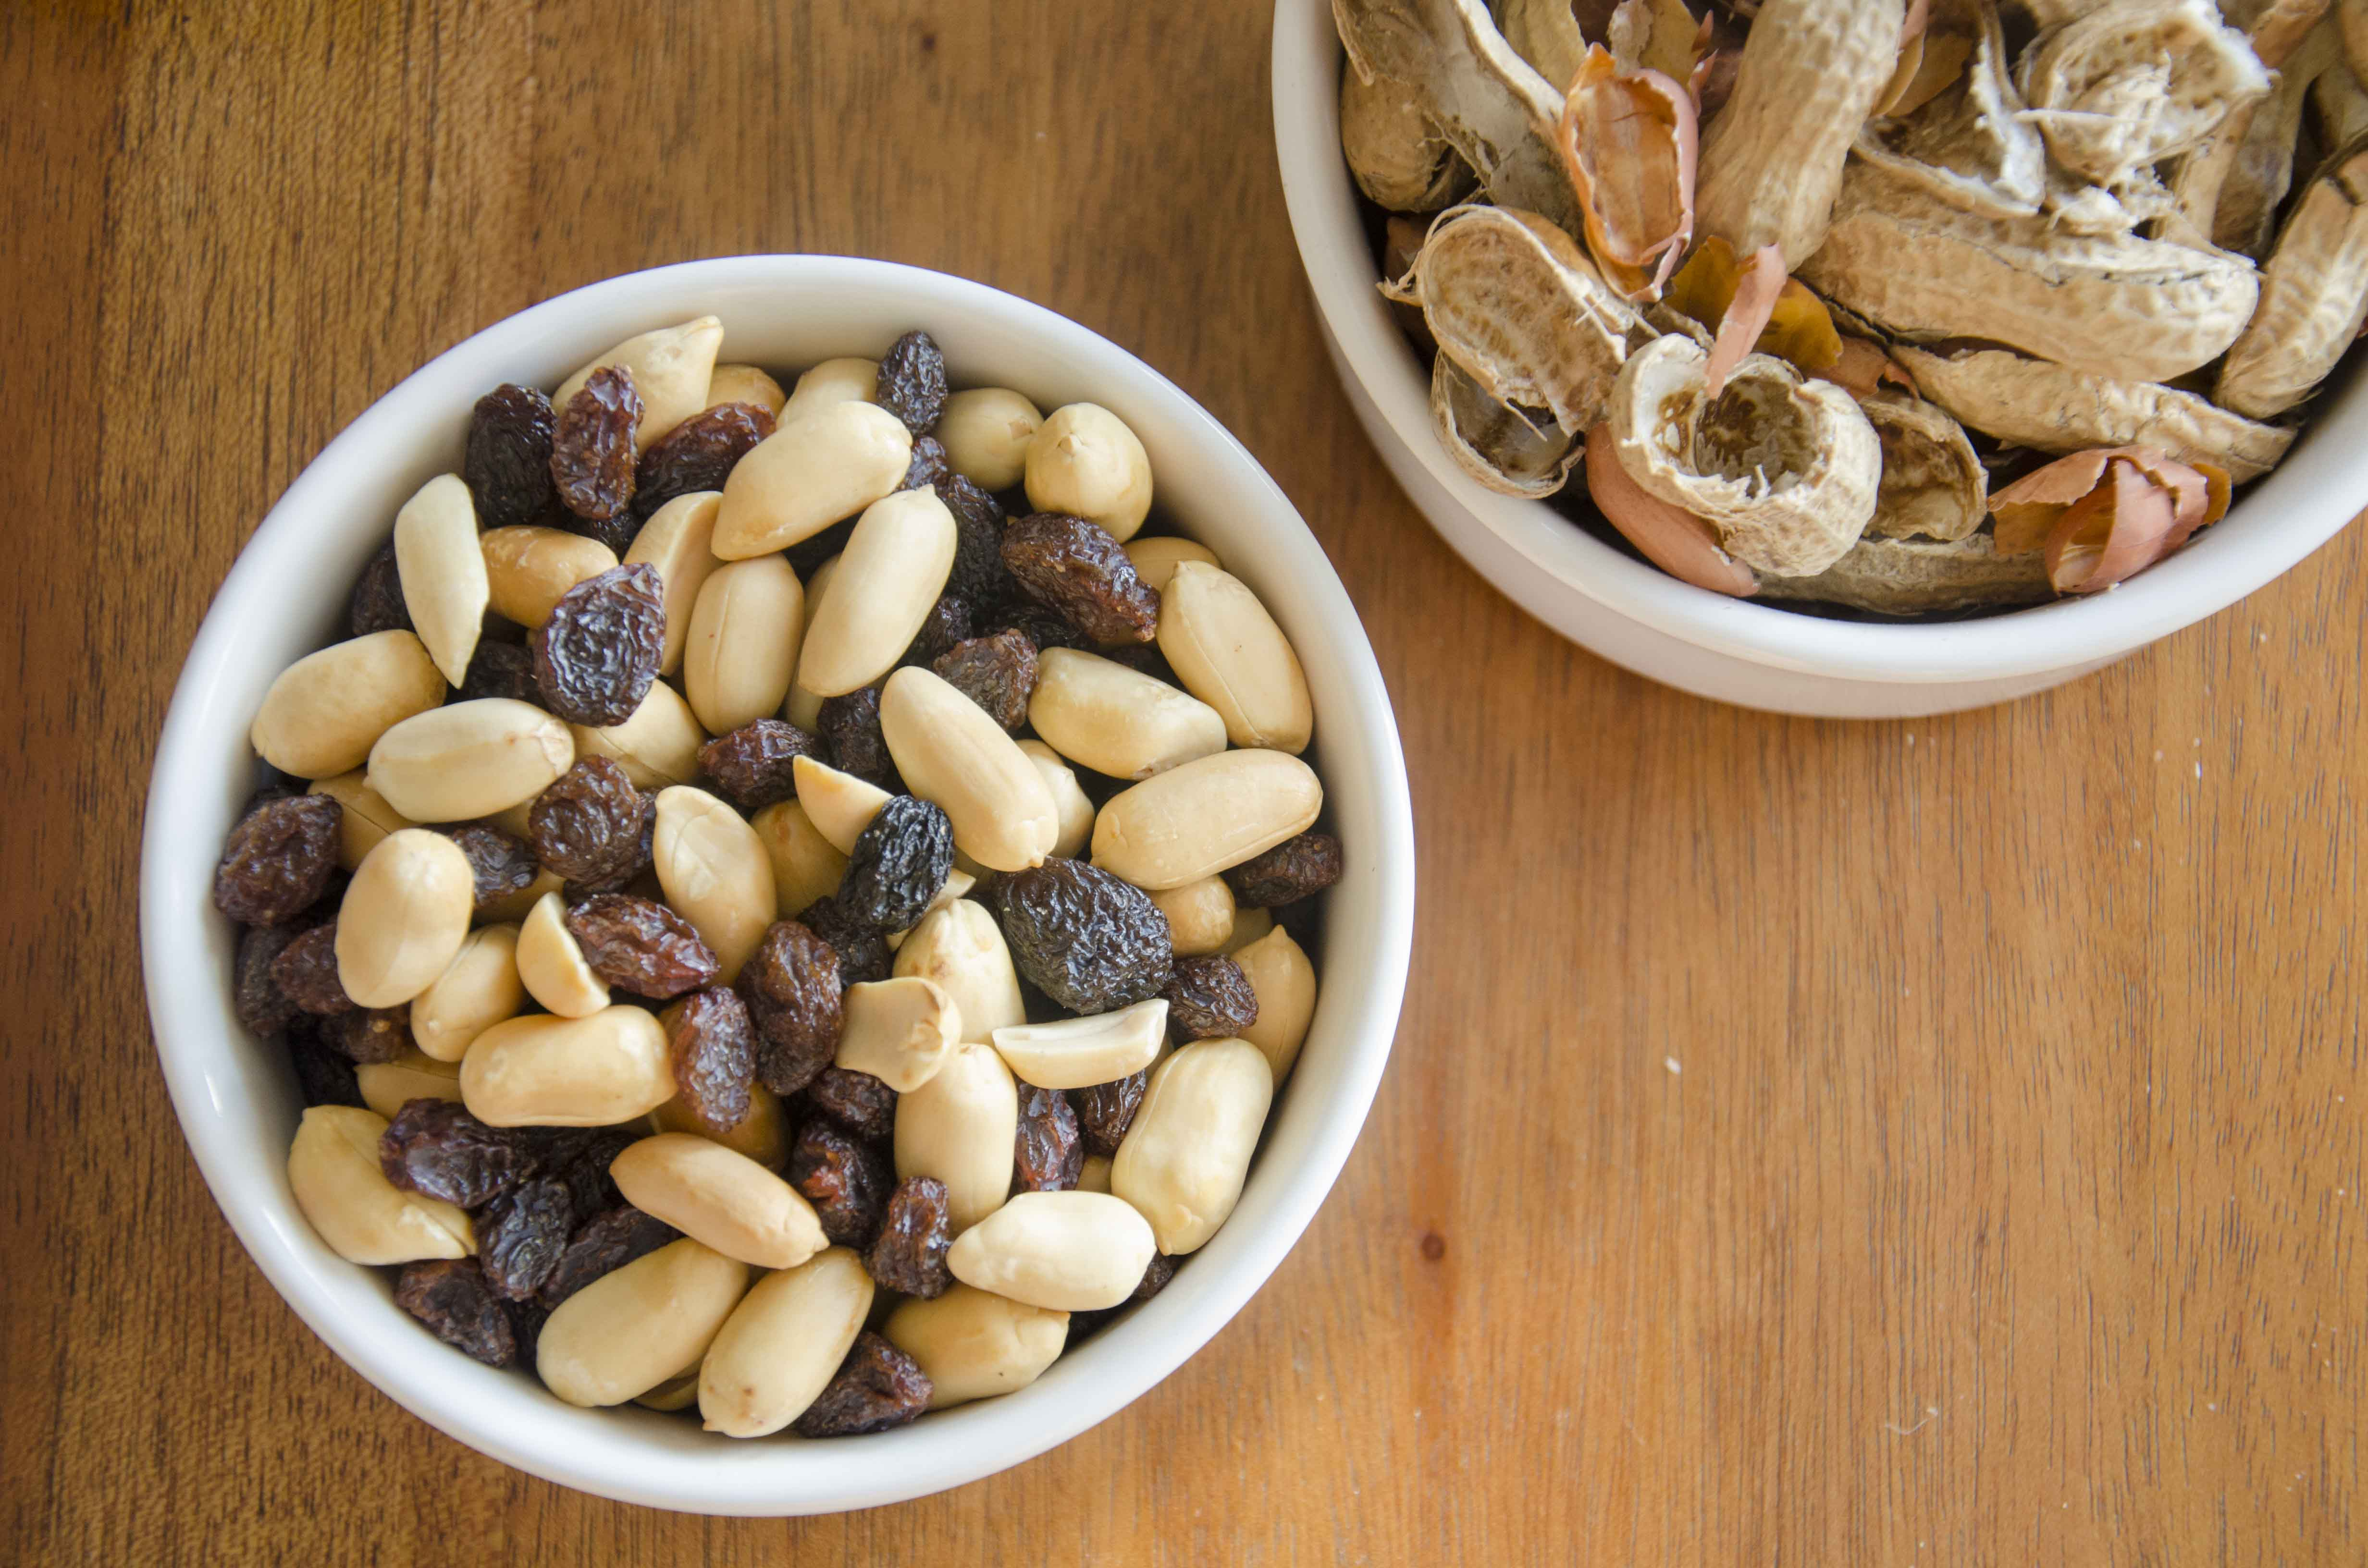 Roasted peanuts and raisins, peanut shells